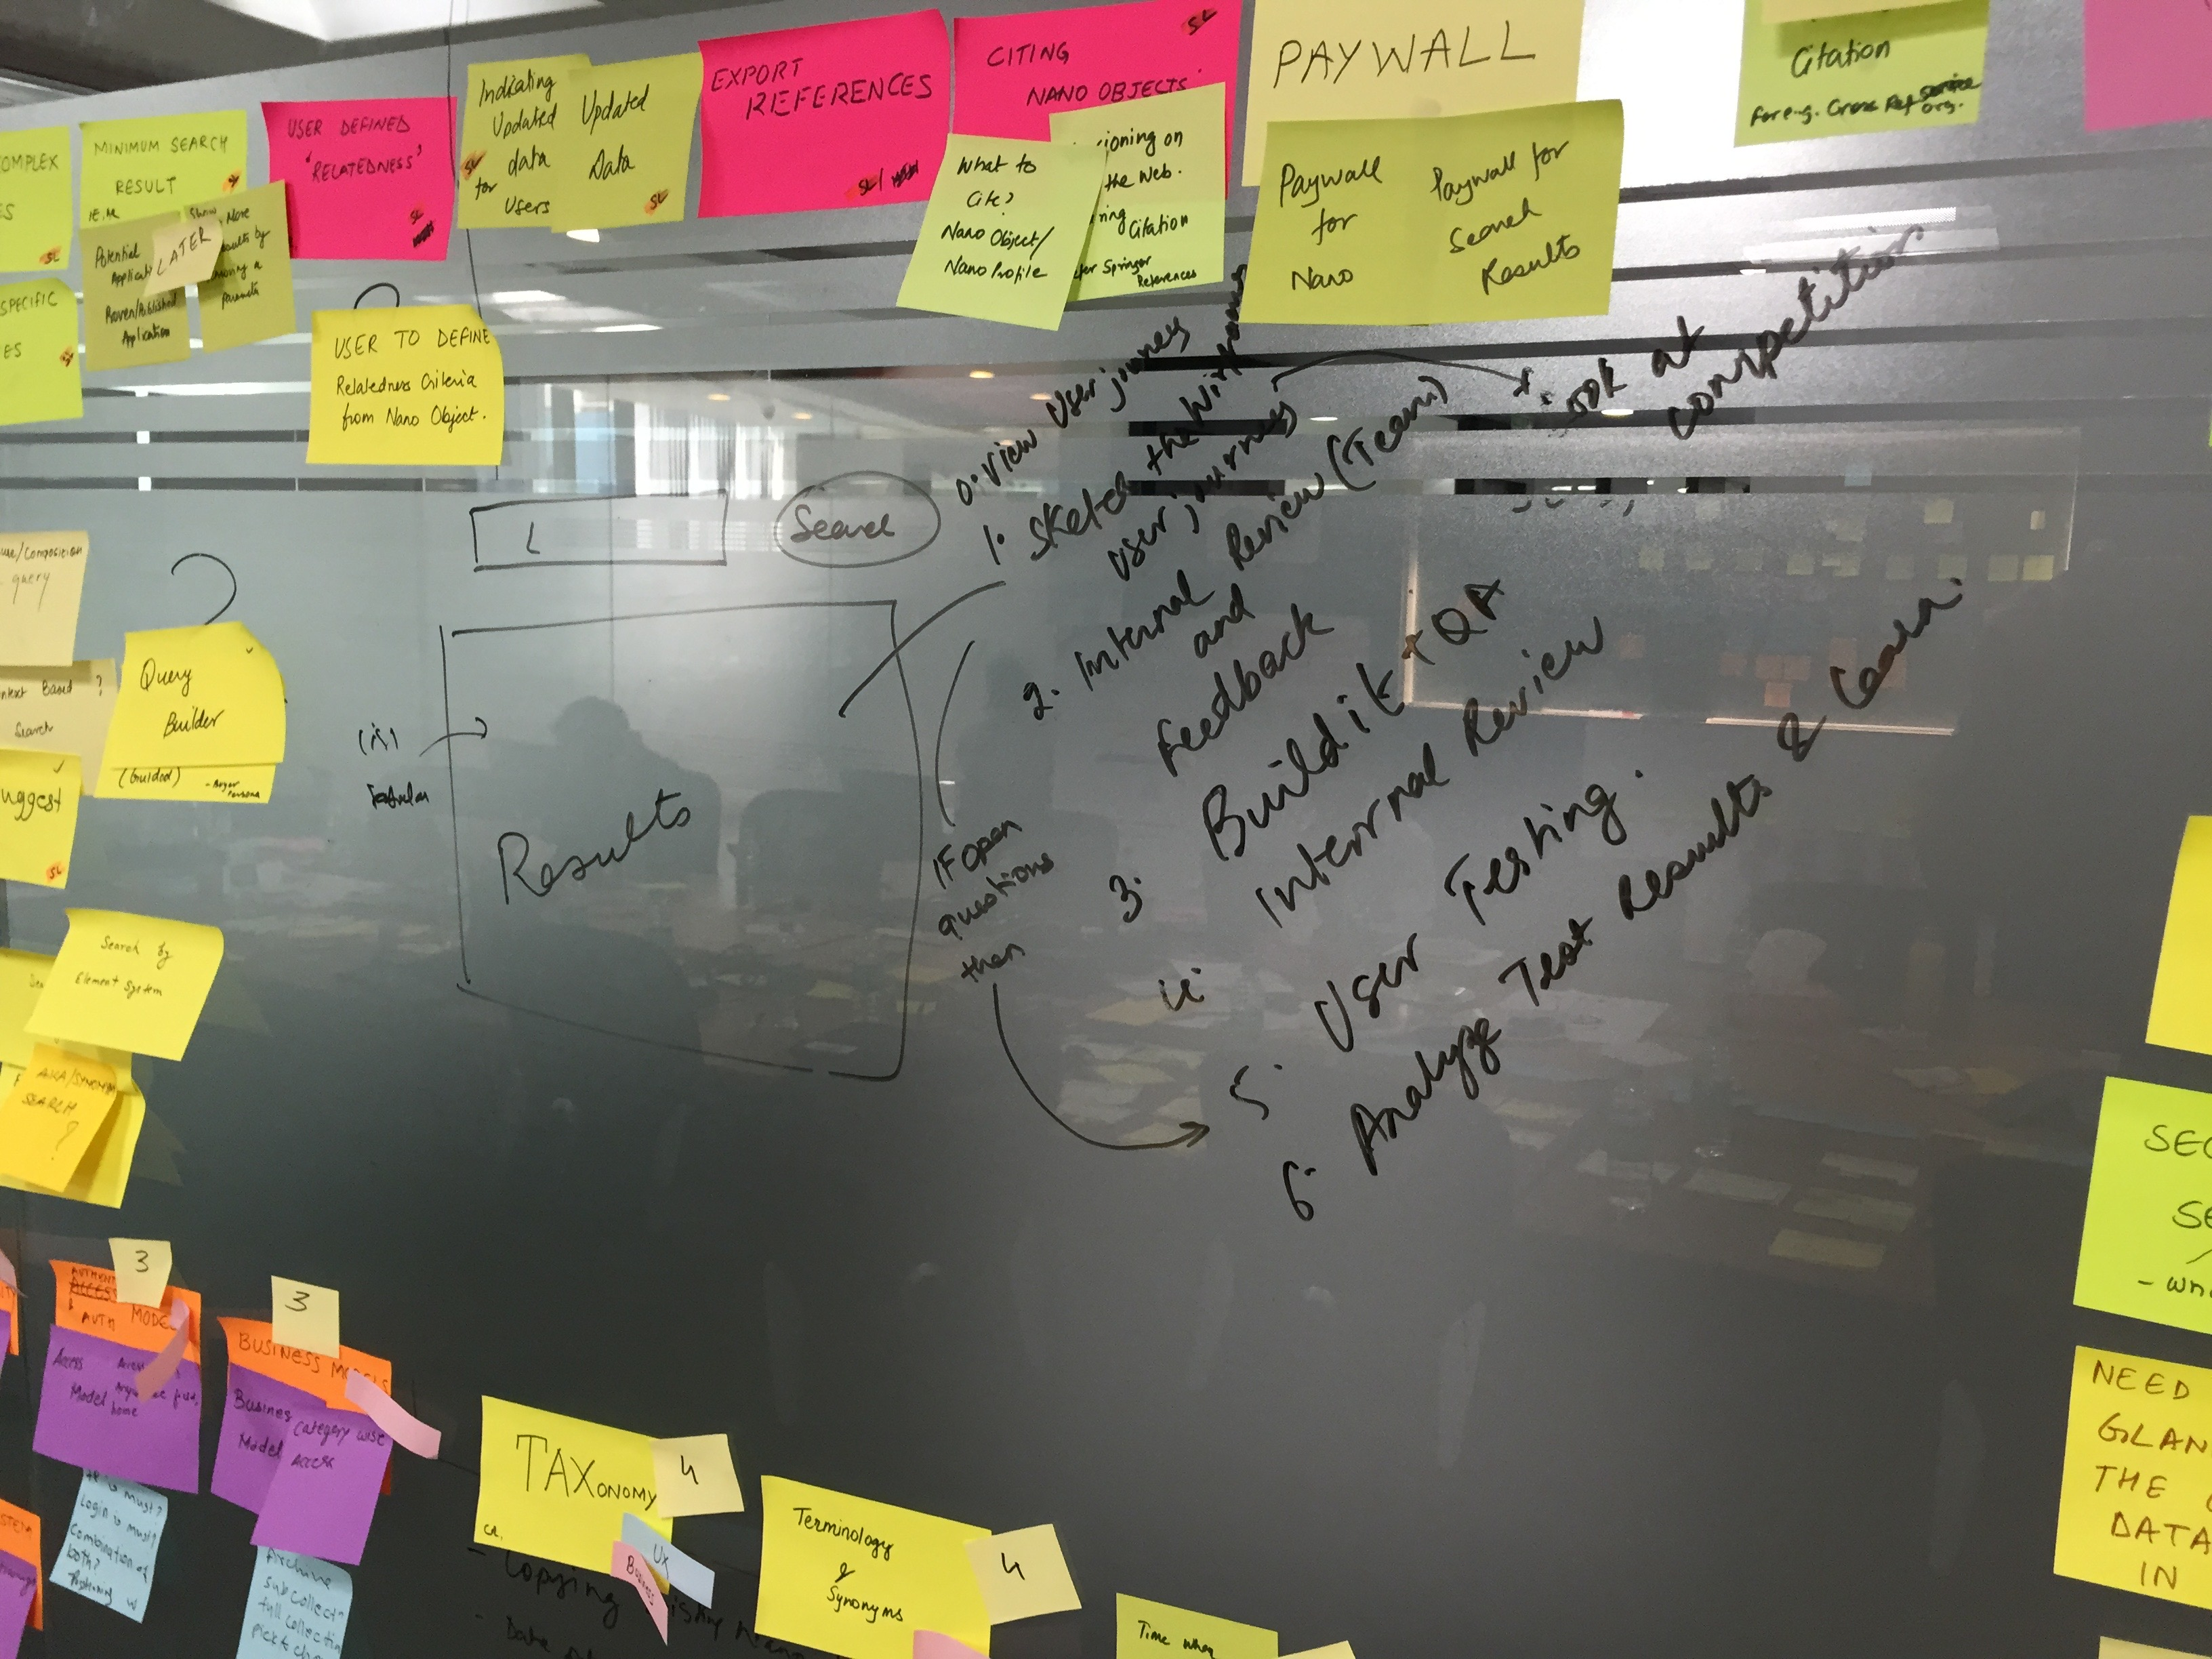 Adhesive notes on a glass wall, with written text, describing the Build, Measure, Learn process